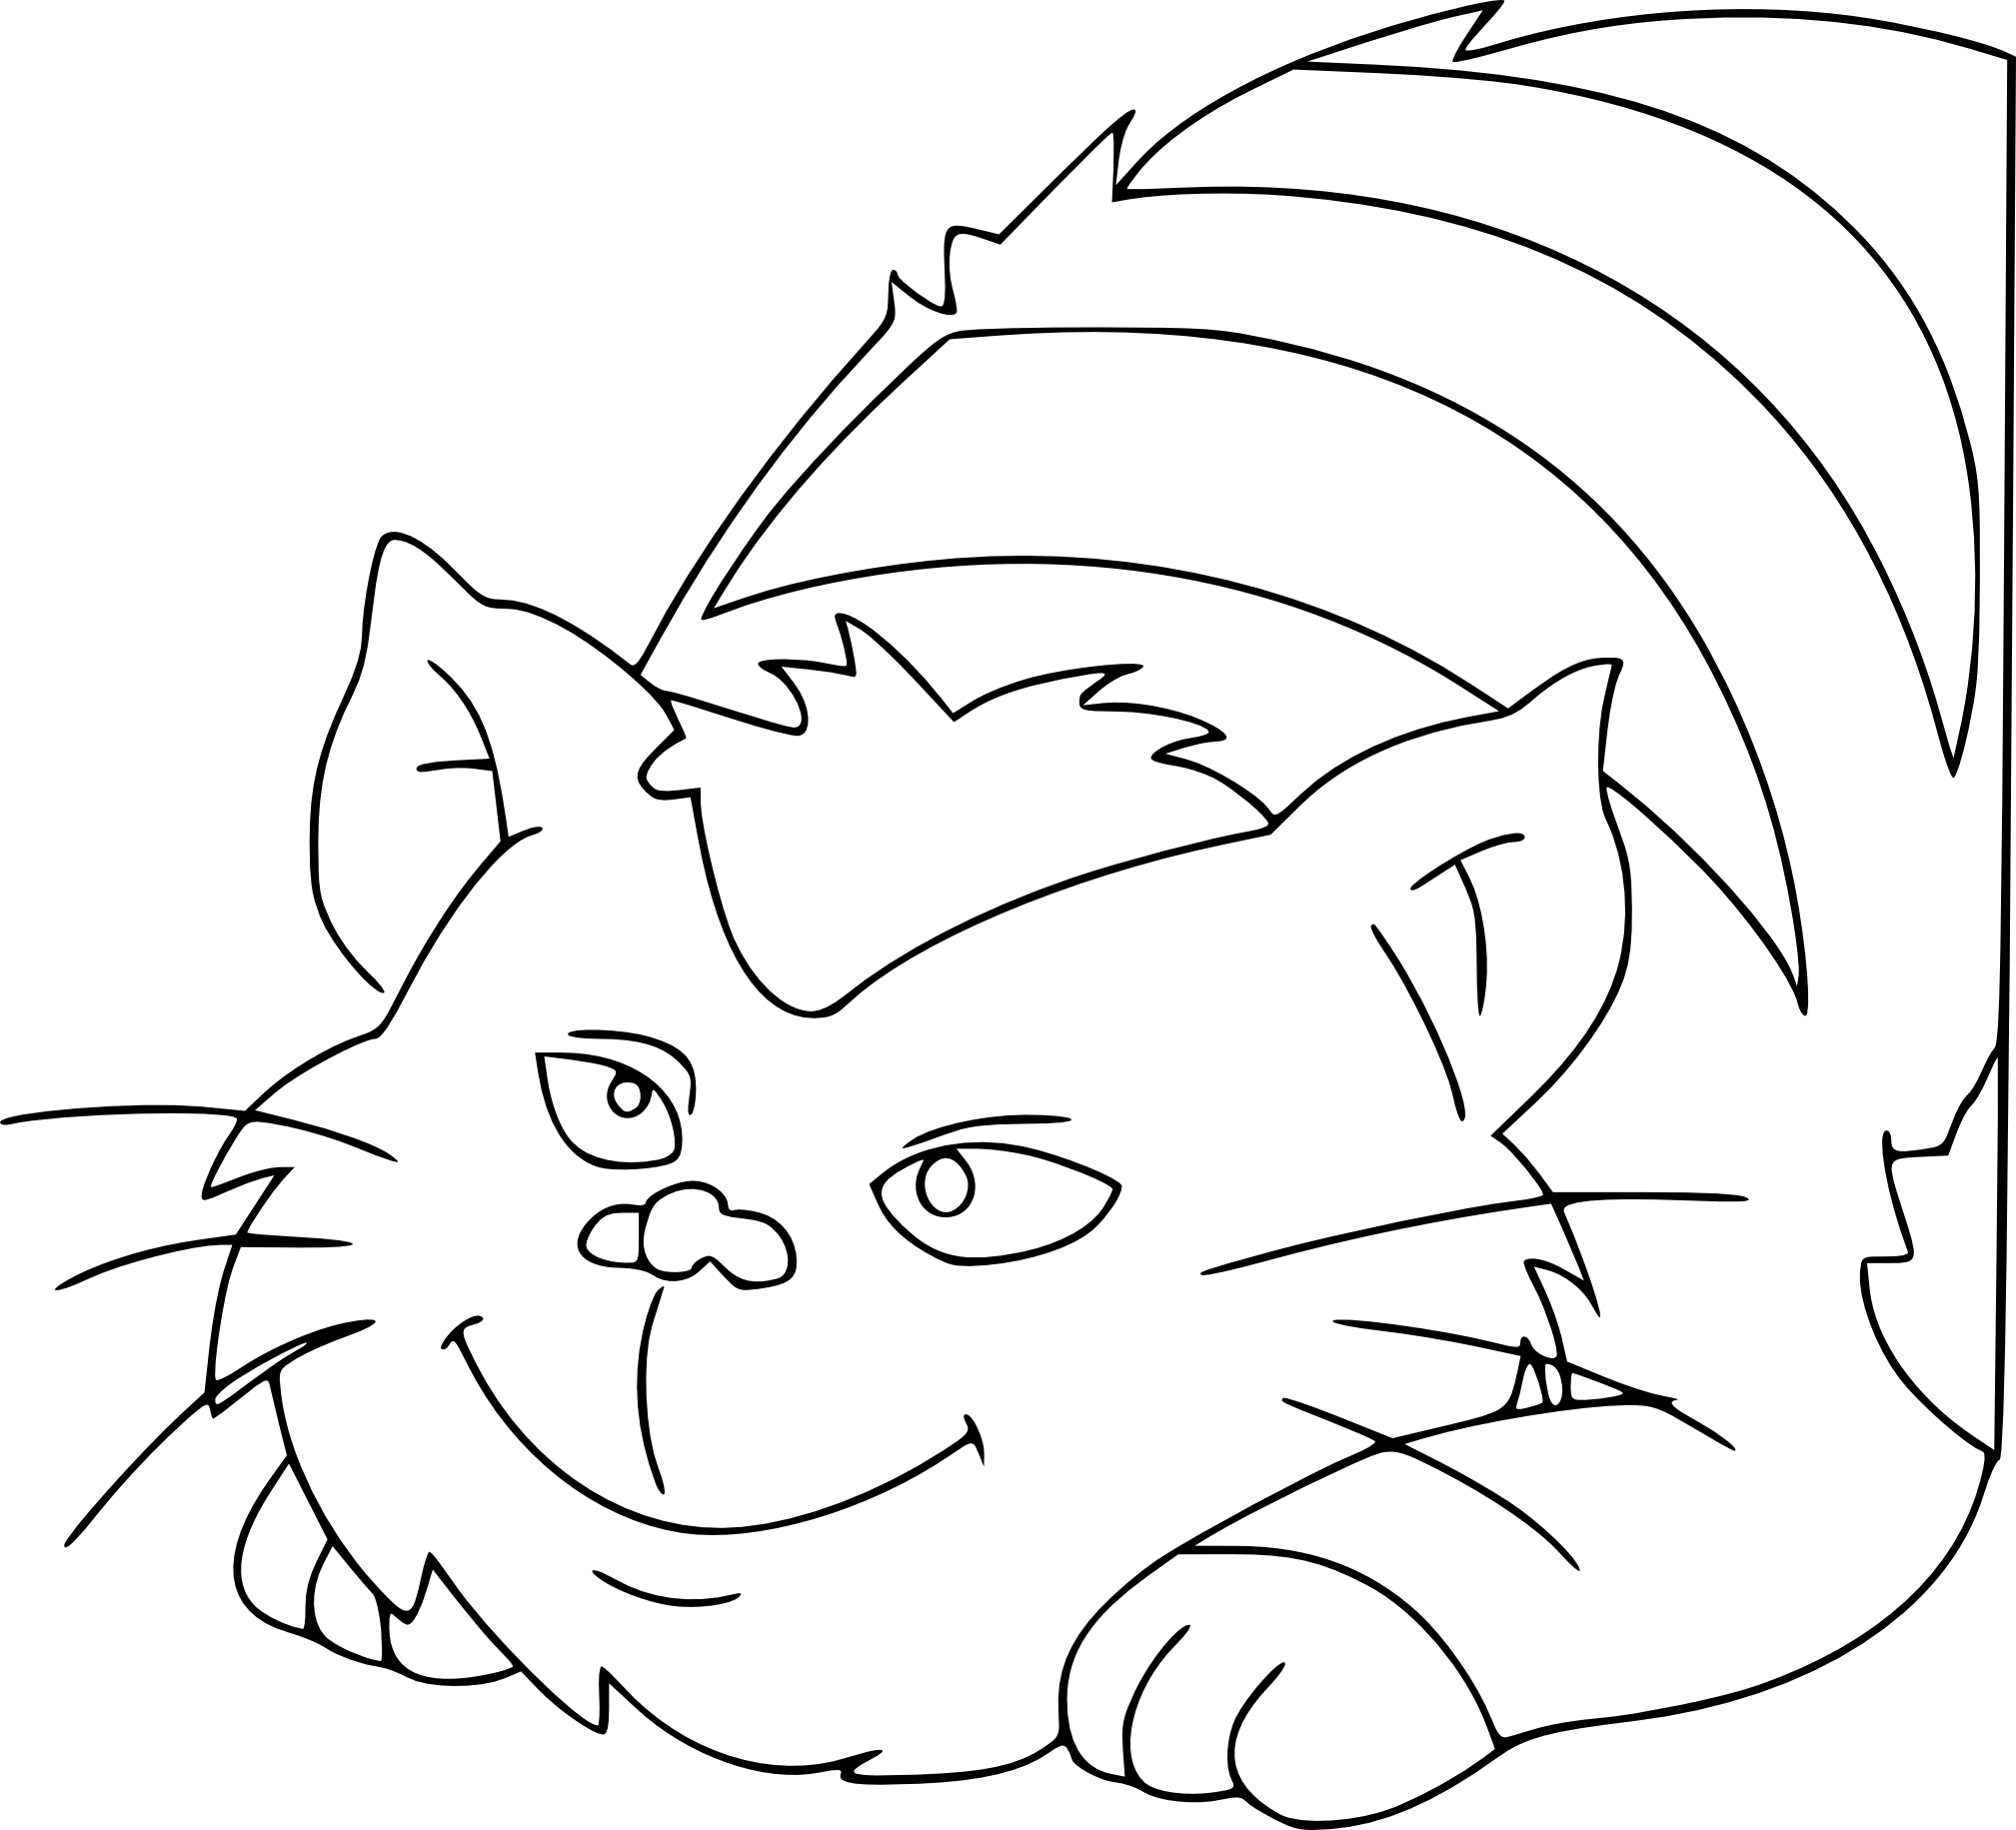 Coloriage madchat